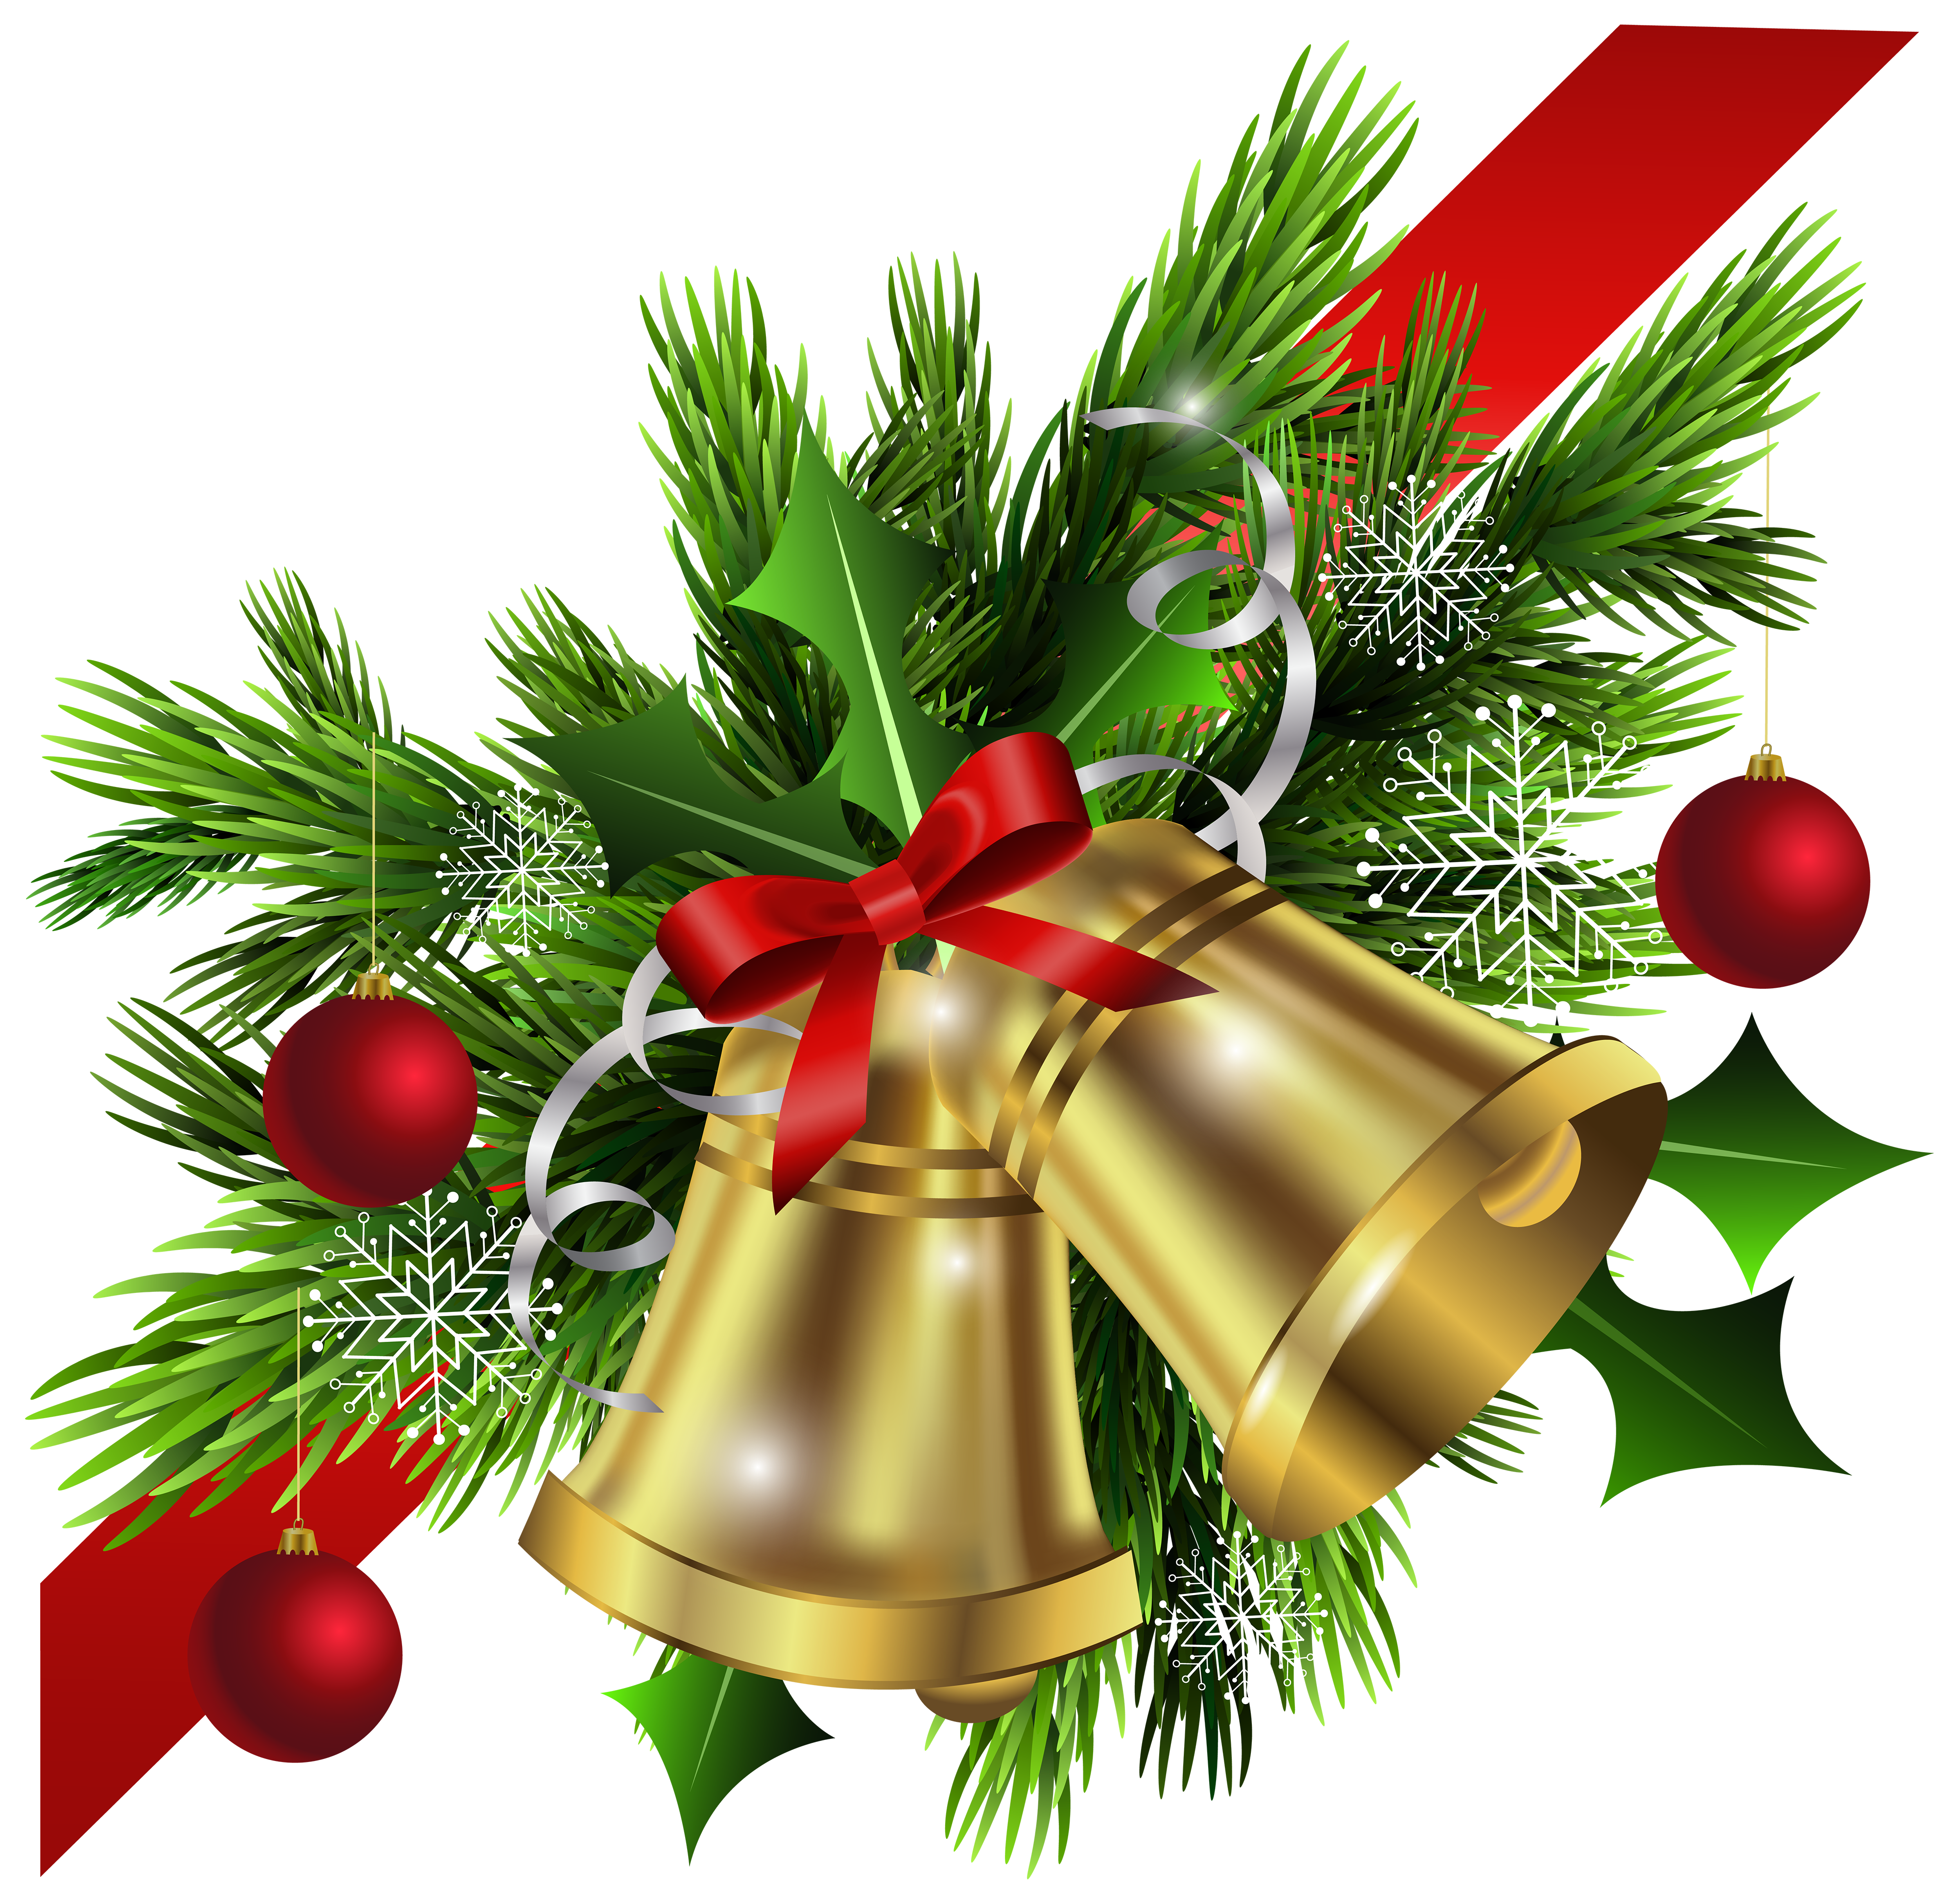 Christmas clipart corner. Free cliparts download clip